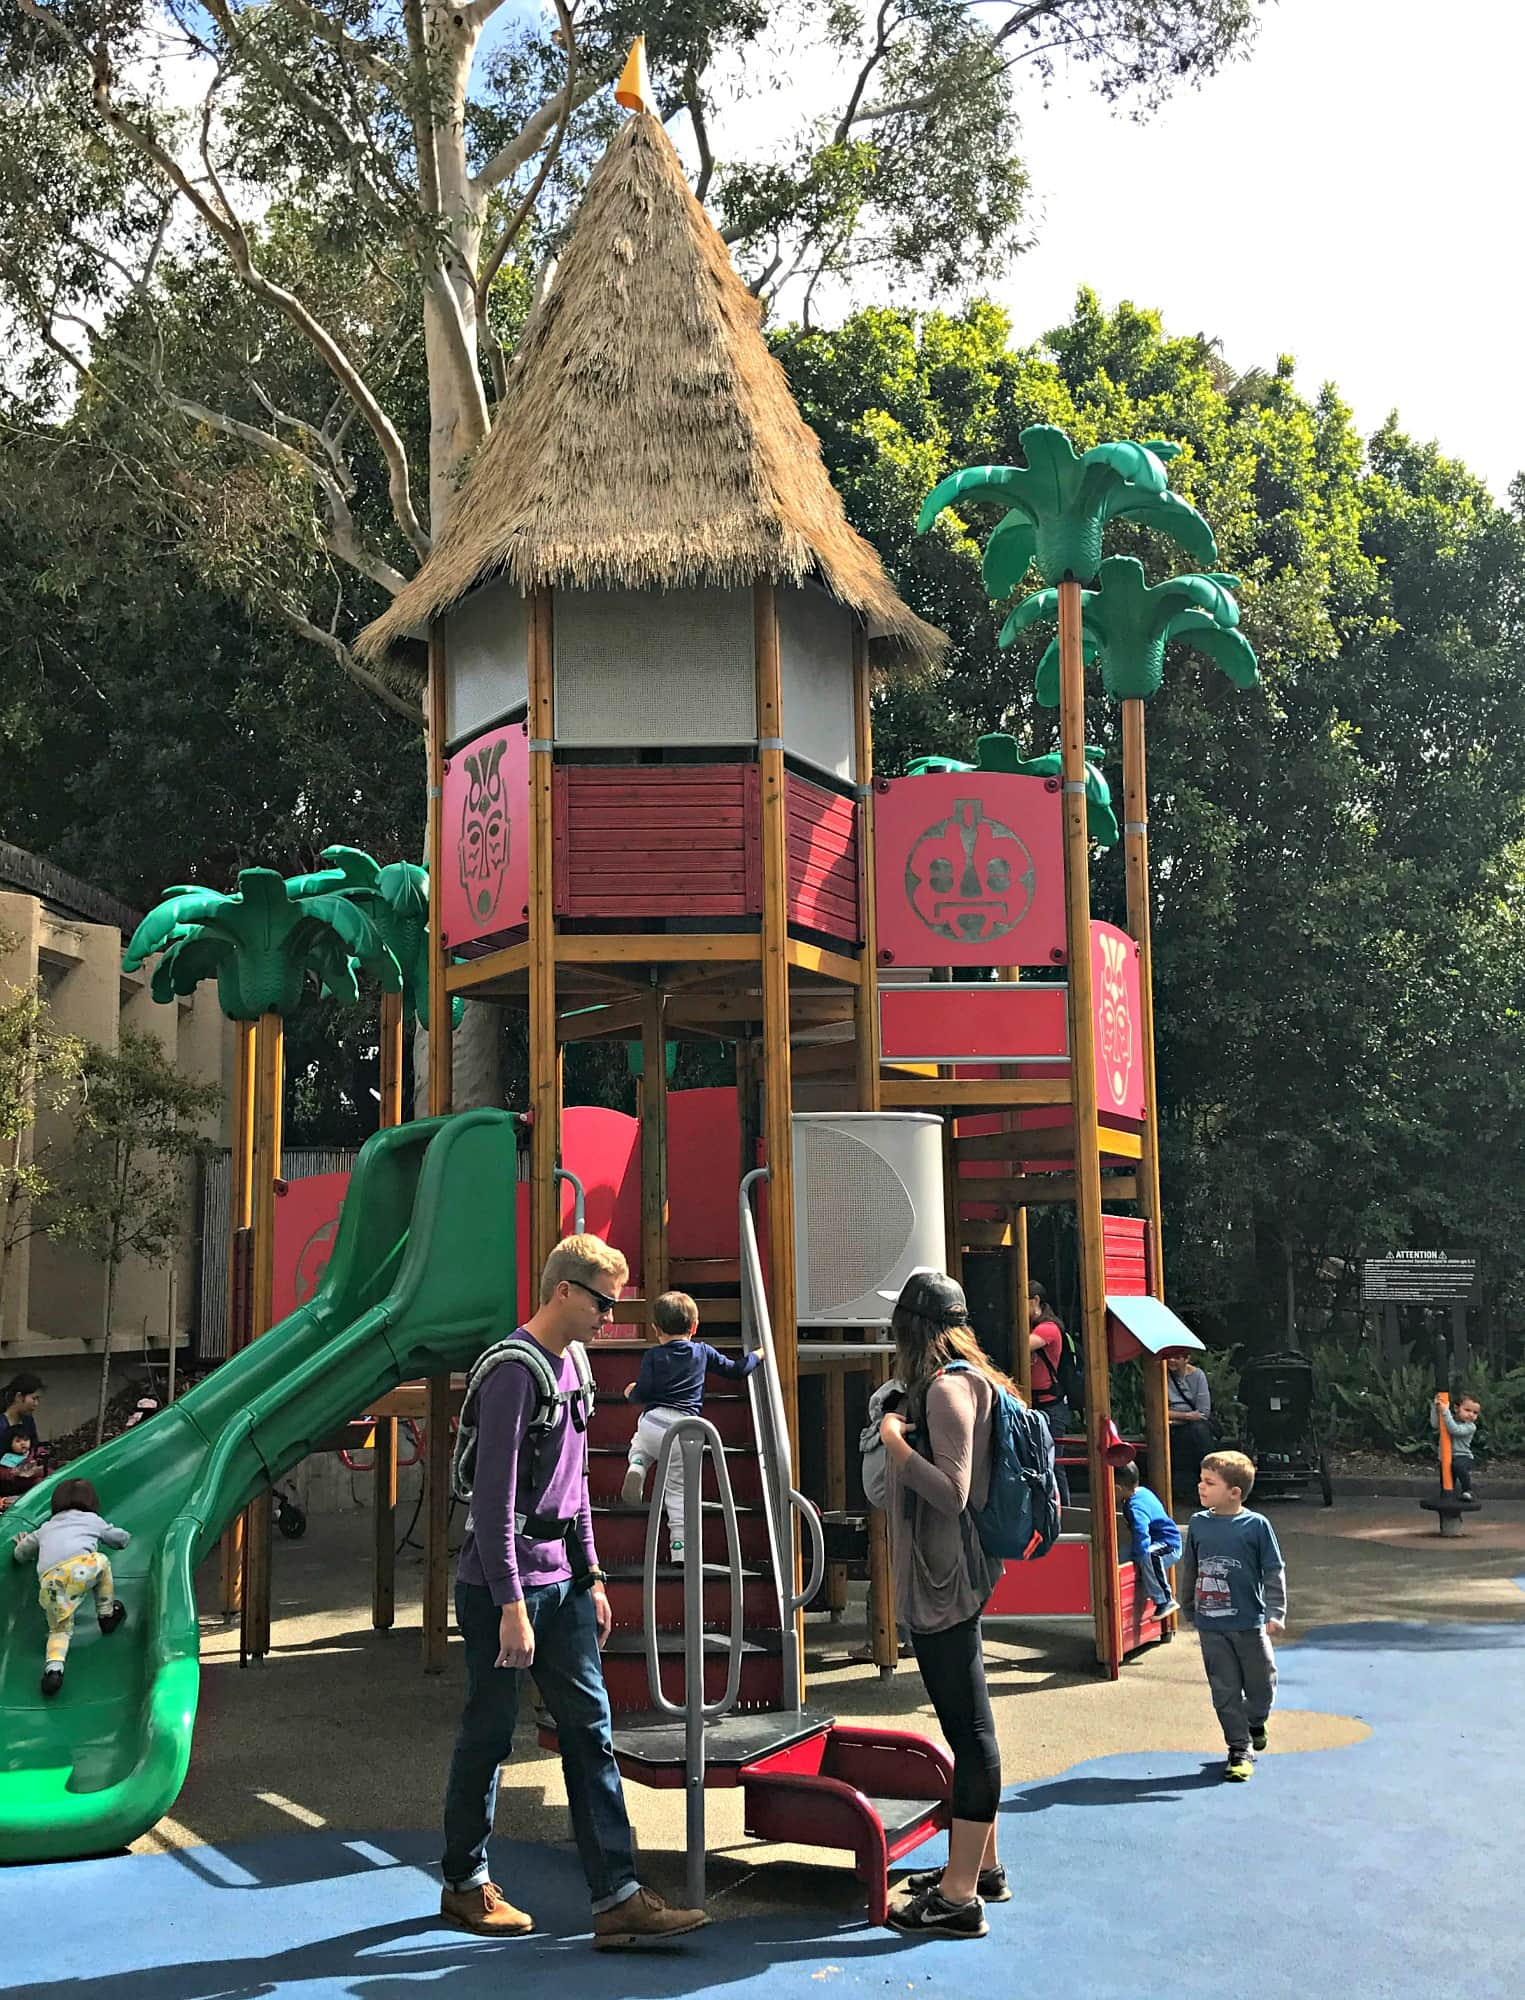 Discovery Playground at San Diego Zoo with kids